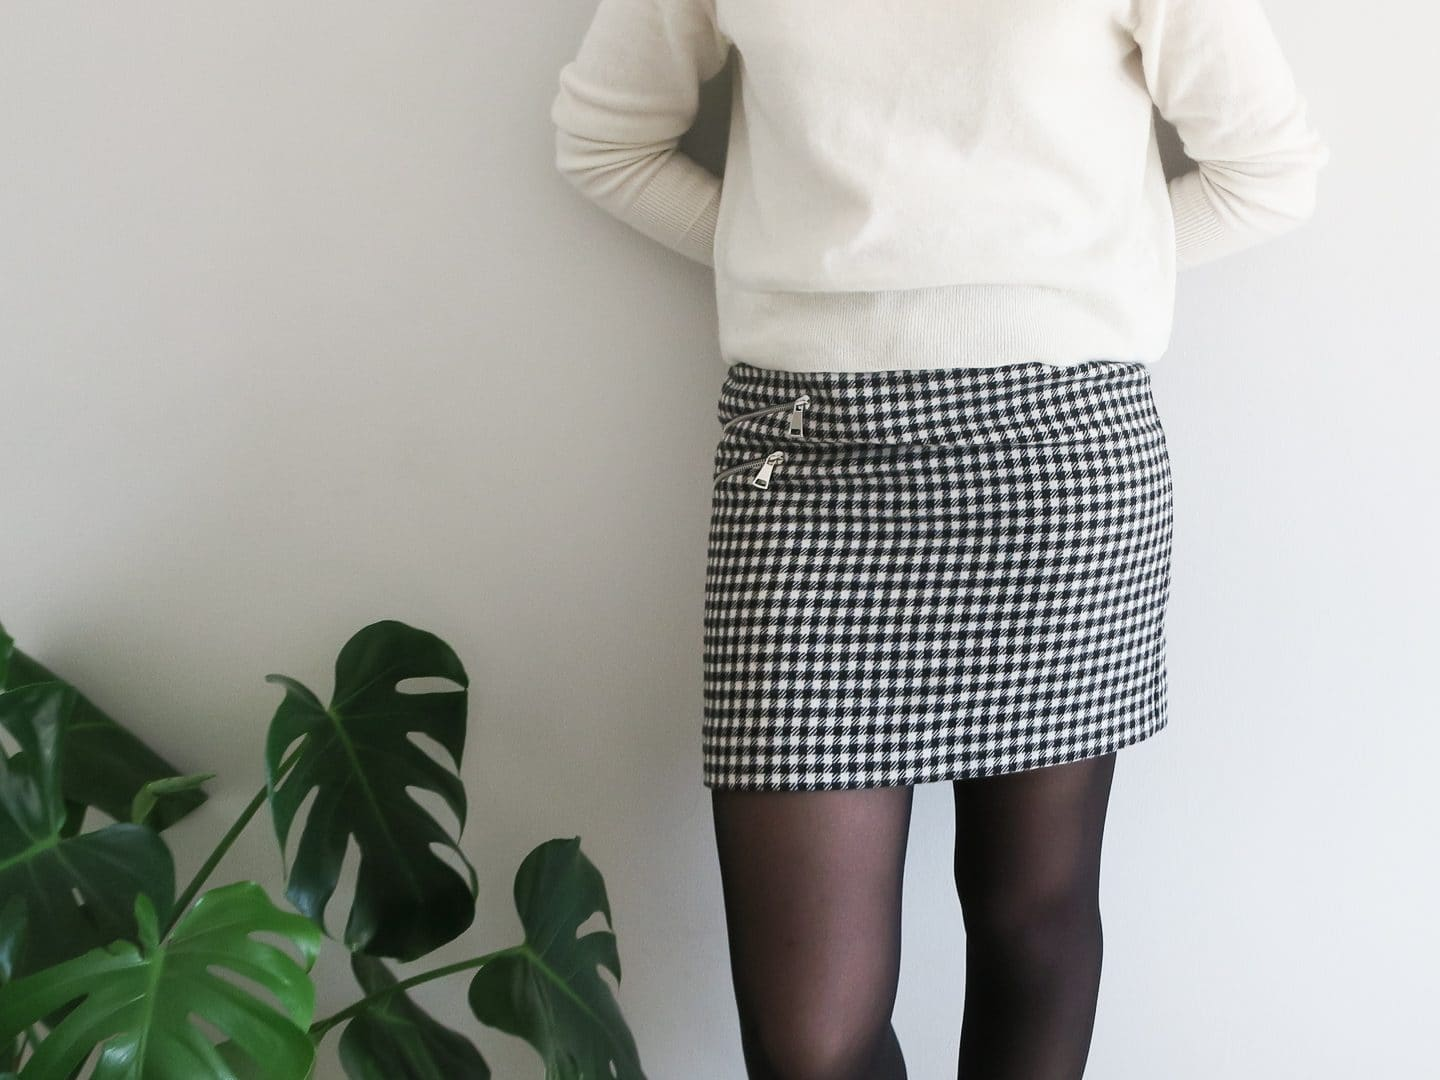 Tights That Last: My Love Affair with Swedish Stockings | Curiously Conscious